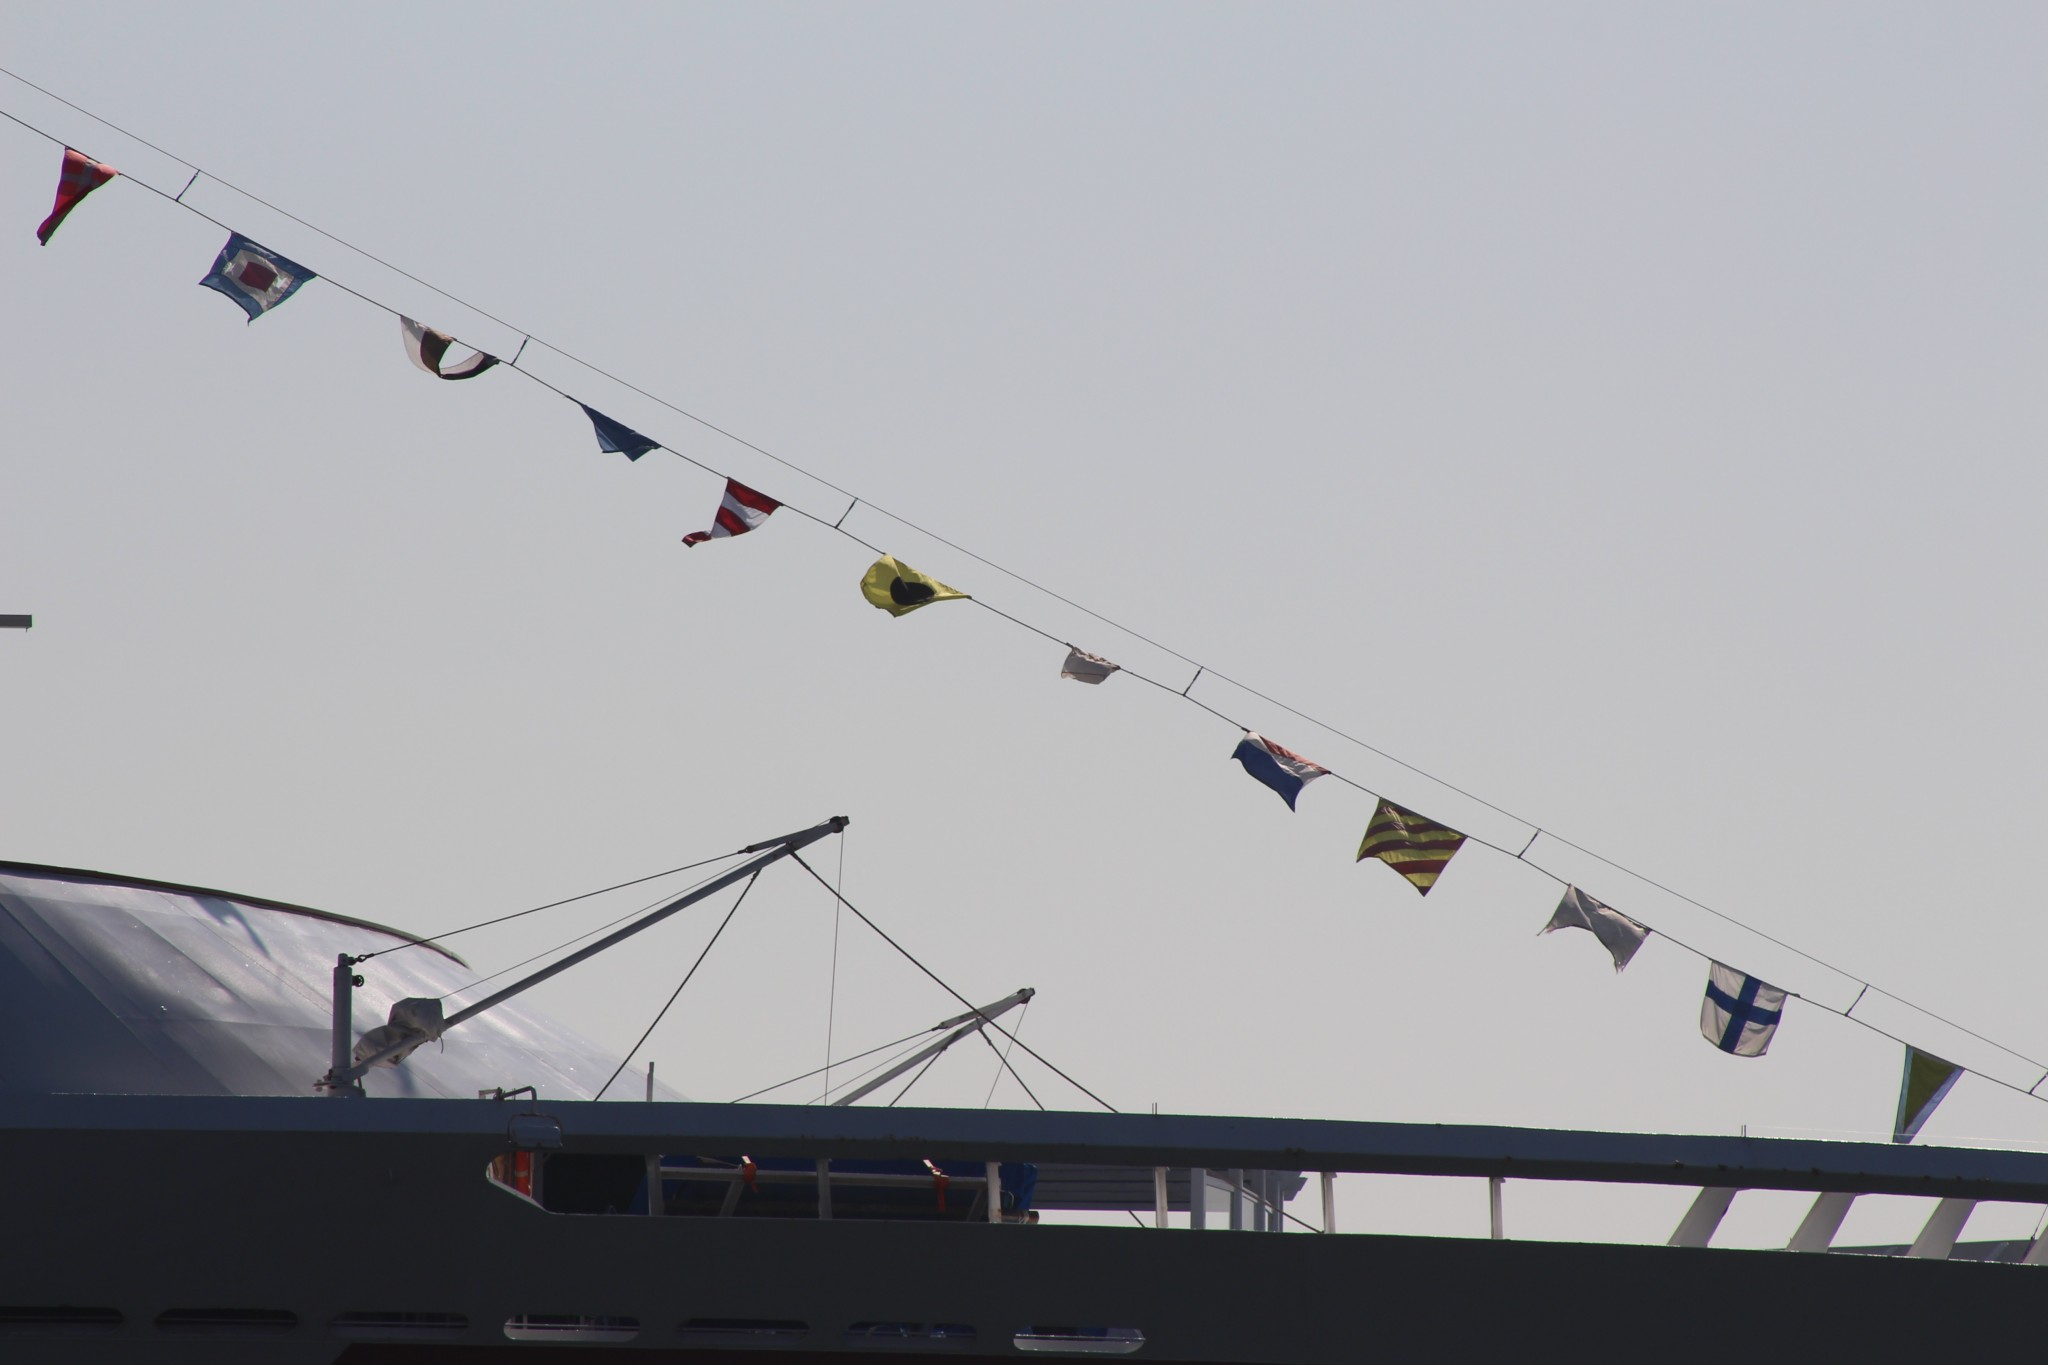 Foreign flags adorn a ship at the Port of Long Beach. Photo: Karen Foshay